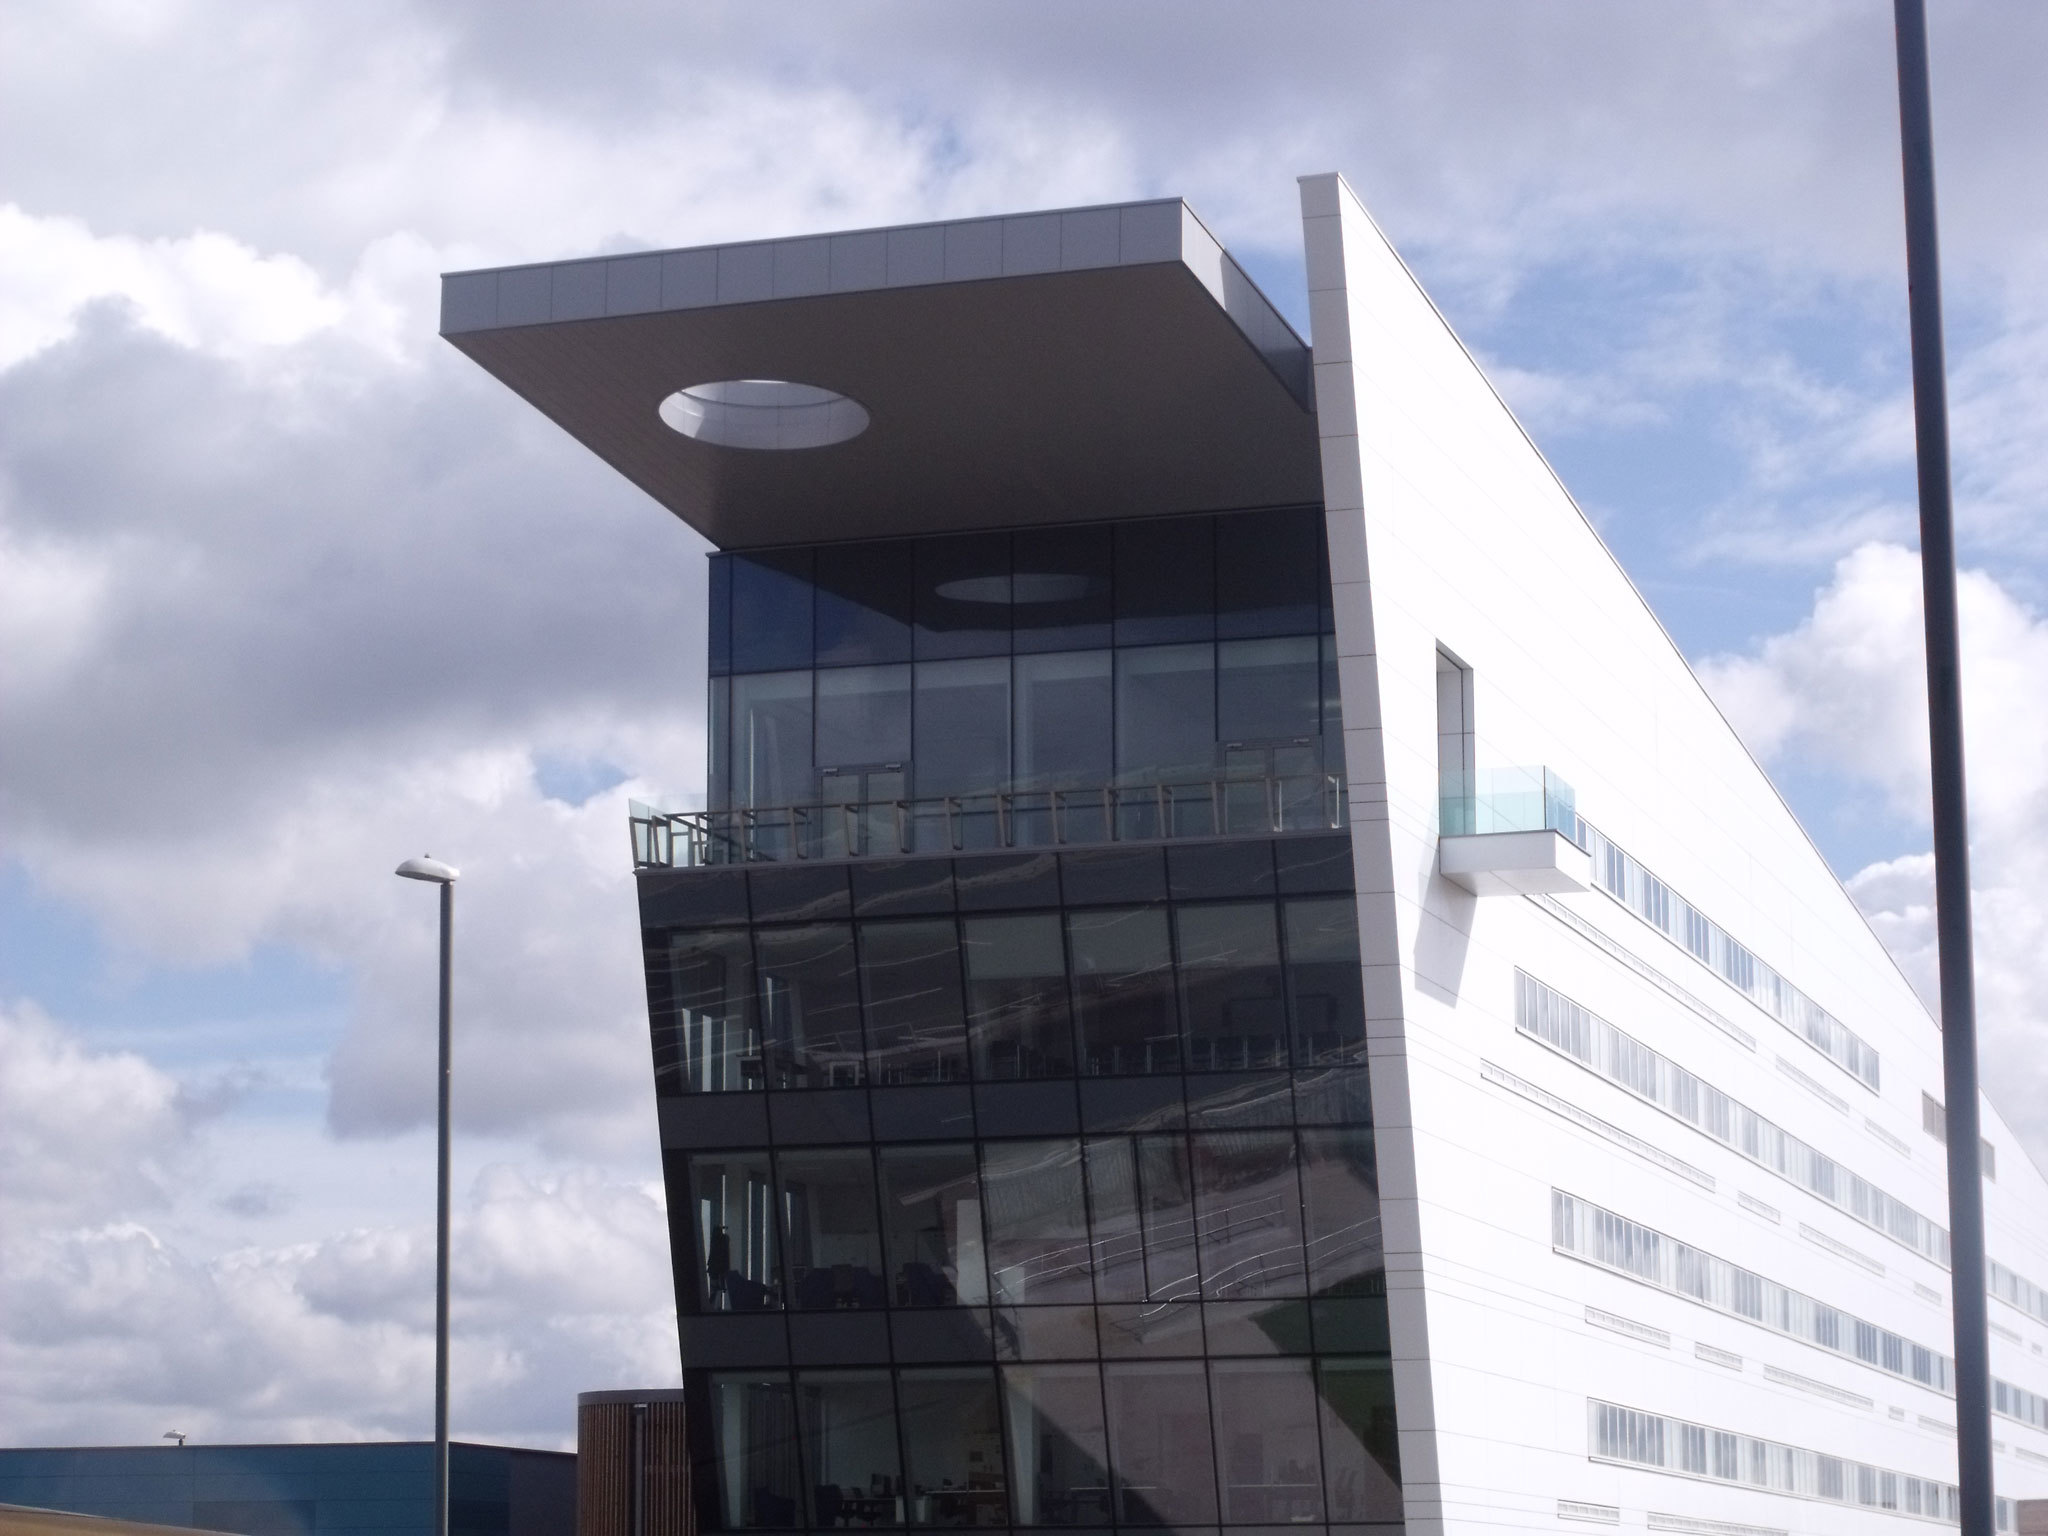 Photo of Bournville College in Birmingham